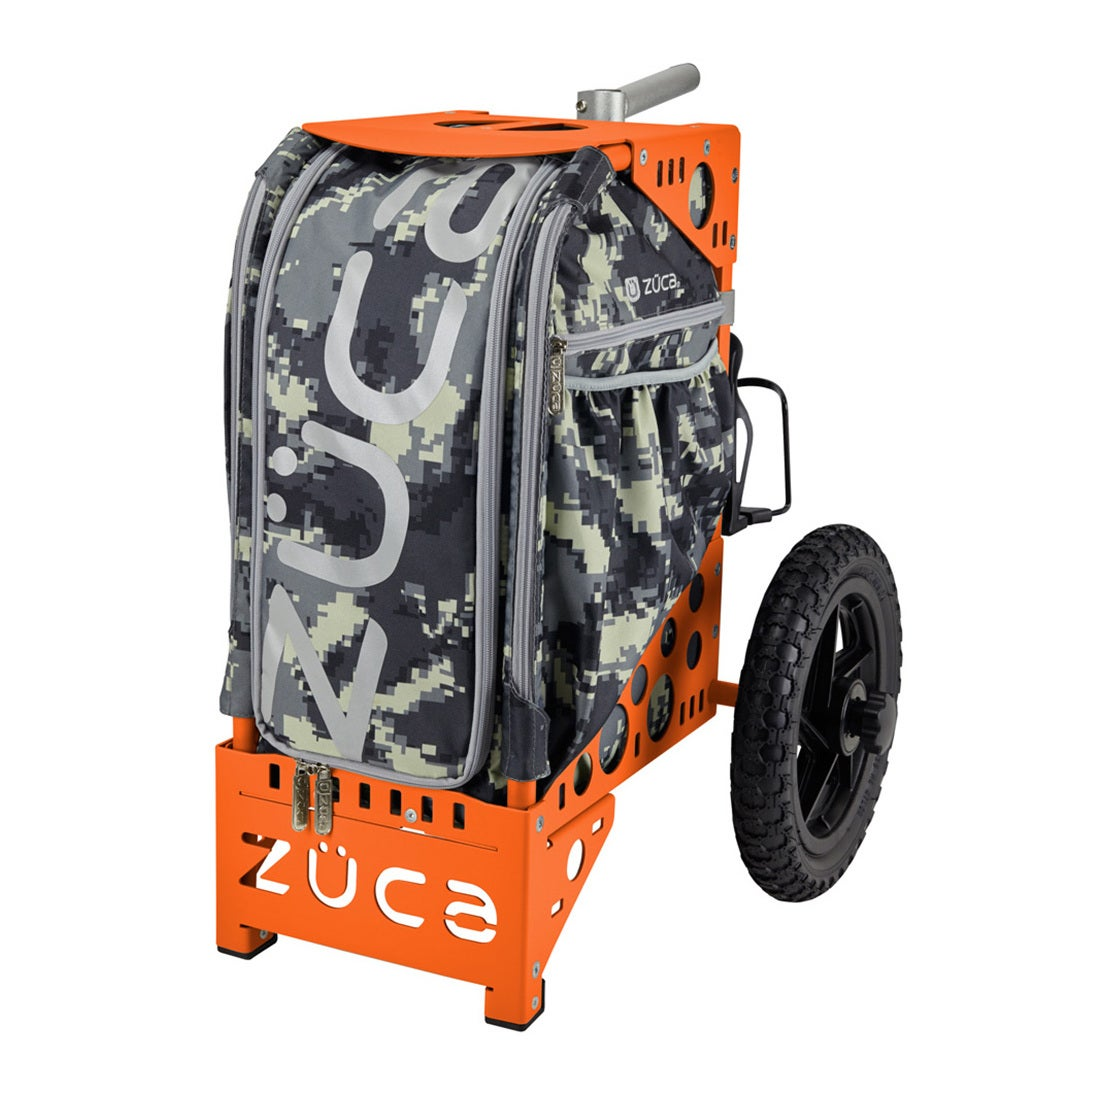 【SAC'S BAR】ズーカ ZUCA キャリーケース 1310 ALL-TERRAIN Anaconda/Orange メンズ